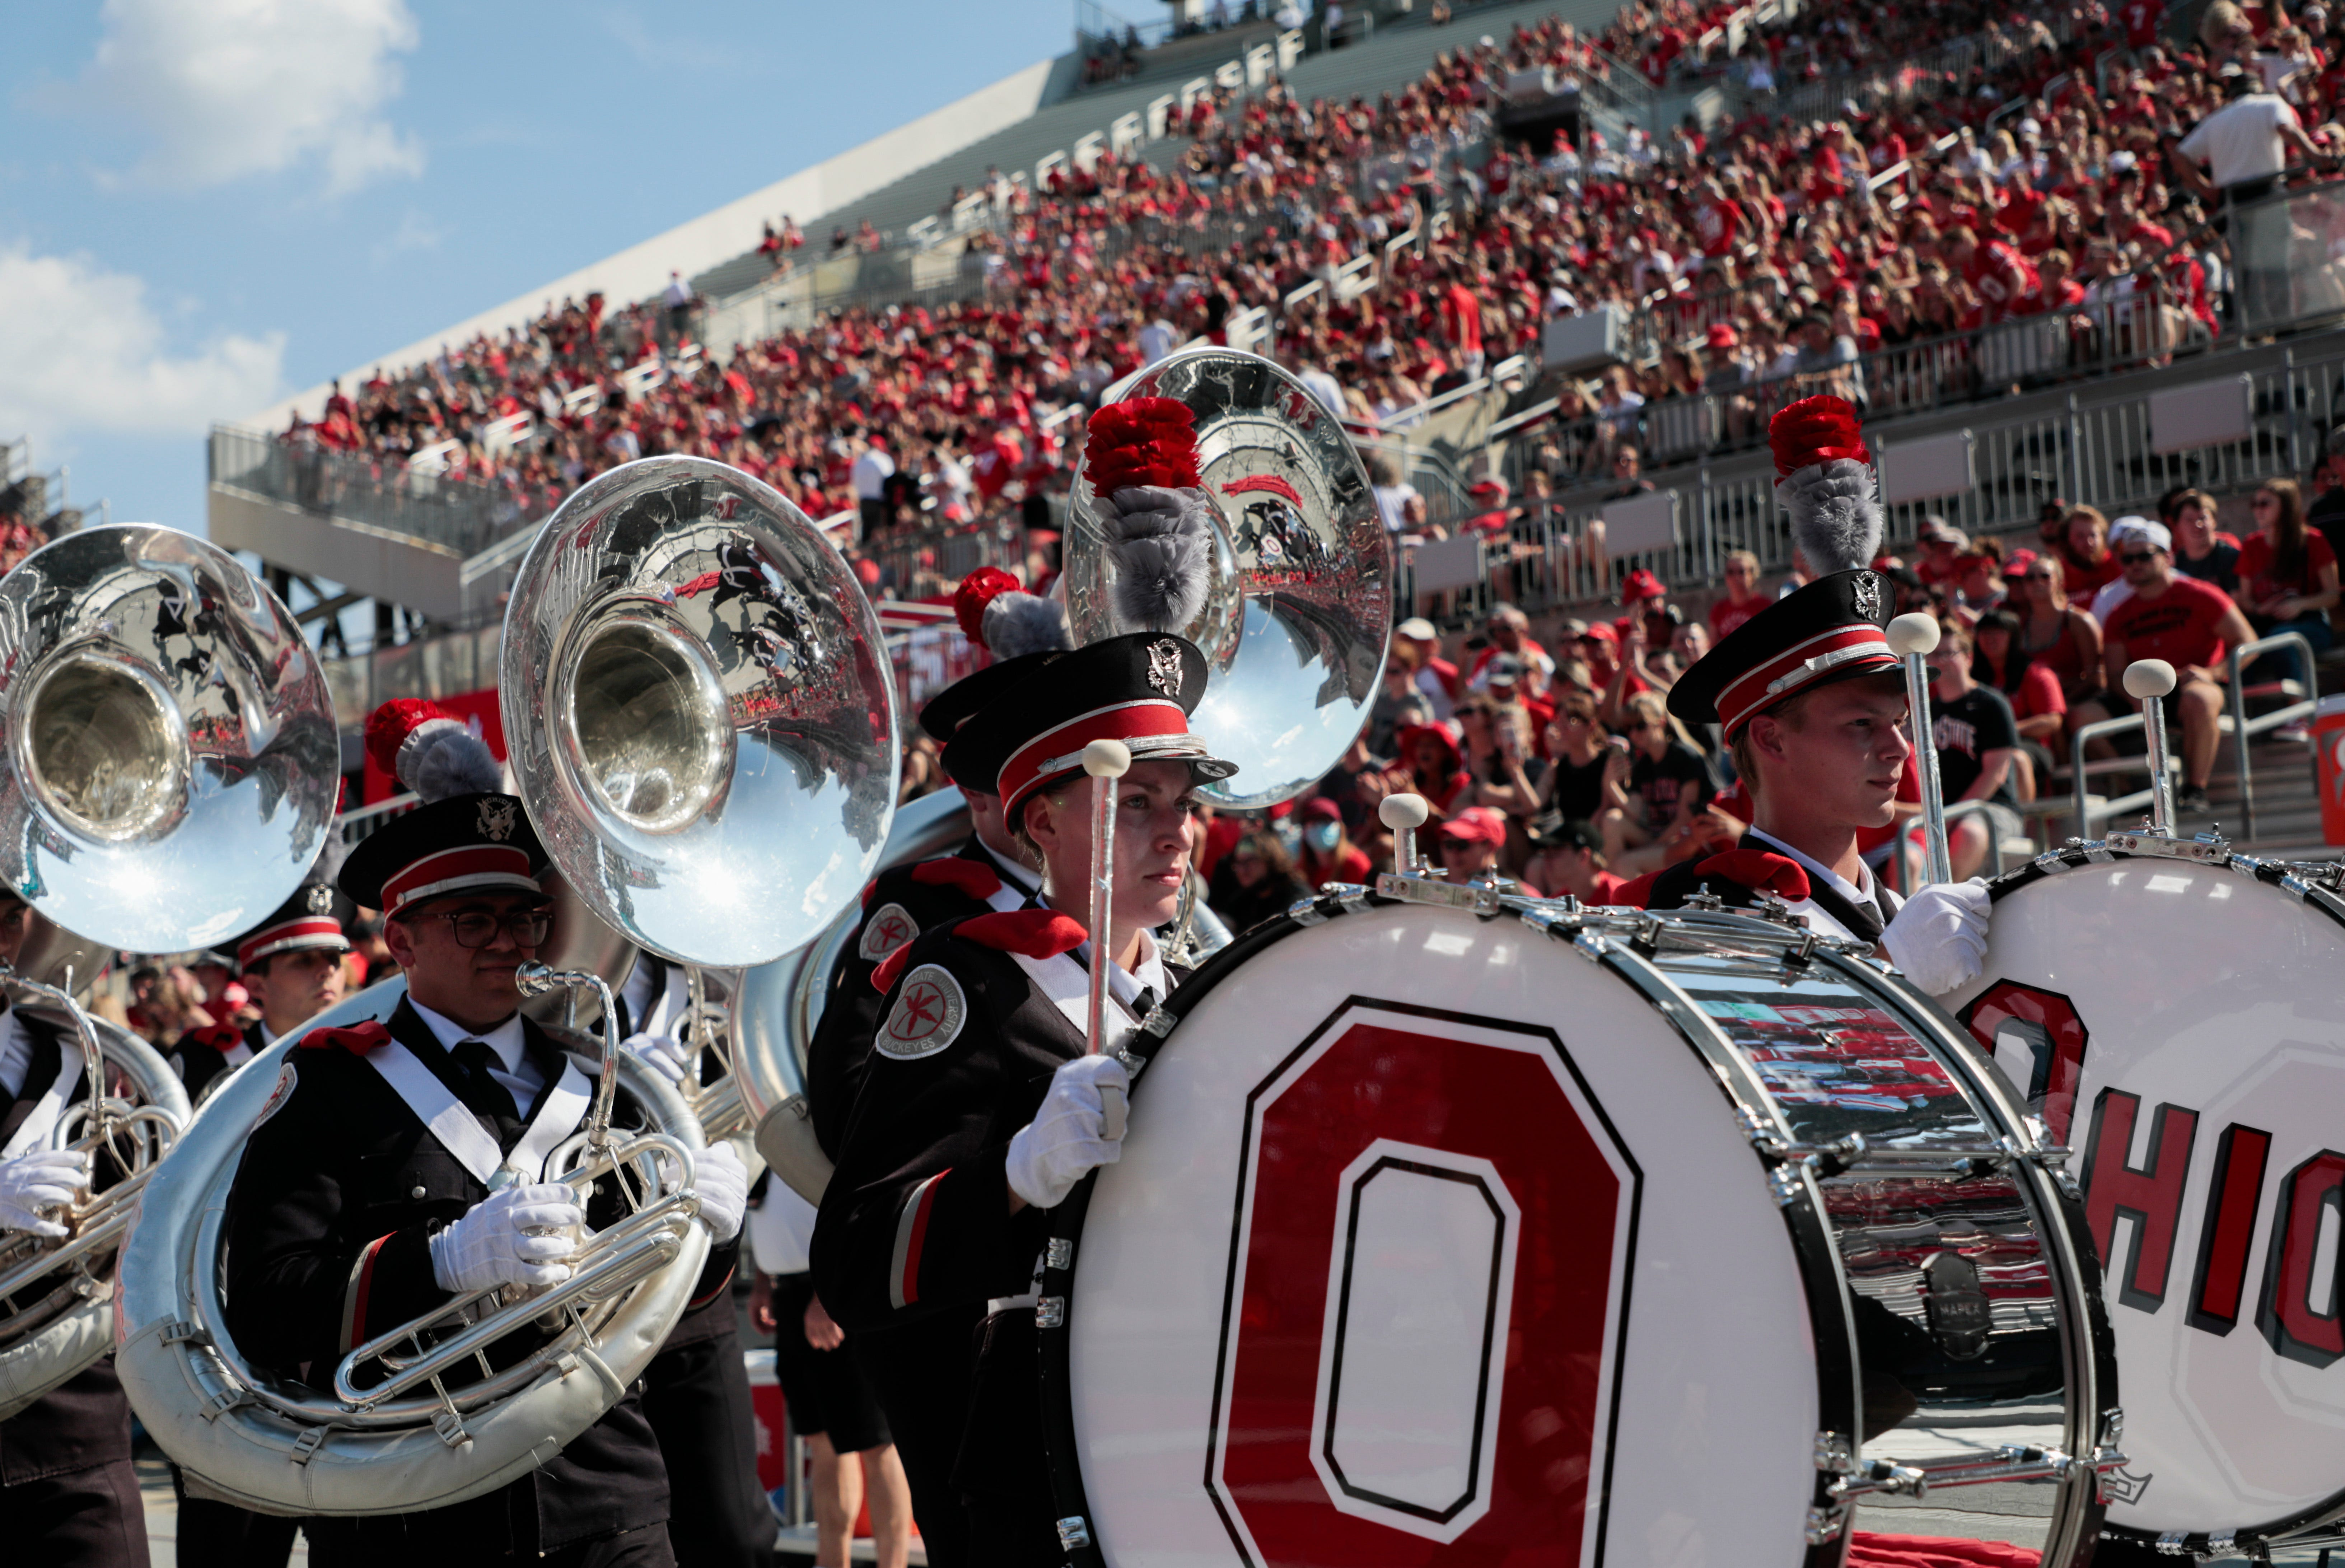 Members of the Ohio State Marching Band enters Ohio Stadium before a NCAA Division I football game between the Ohio State Buckeyes and the Tulsa Golden Hurricane on Saturday, Sept. 18, 2021 in Columbus, Ohio.